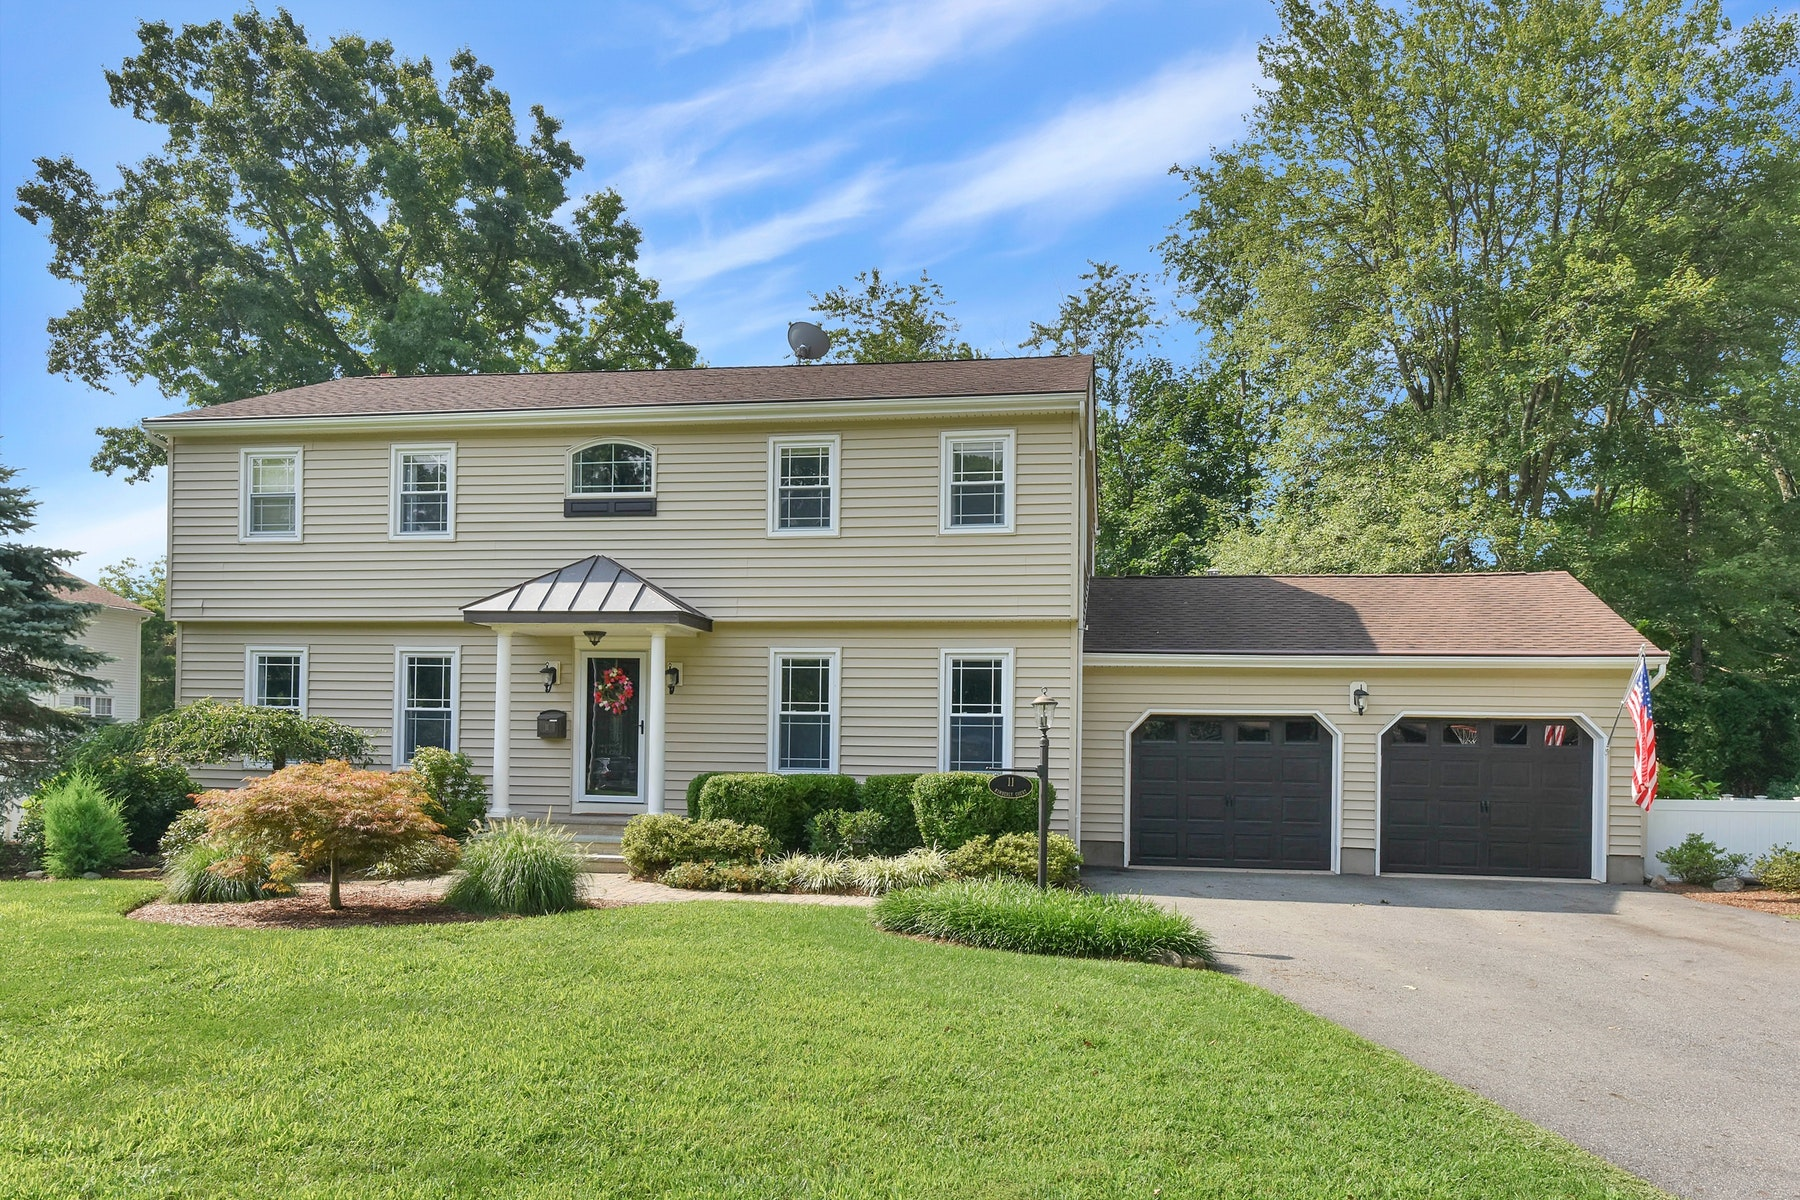 Single Family Home for Sale at A Beautifully Appointed Expanded Colonial Home. 11 Kimberly Court Ramsey, New Jersey 07446 United States